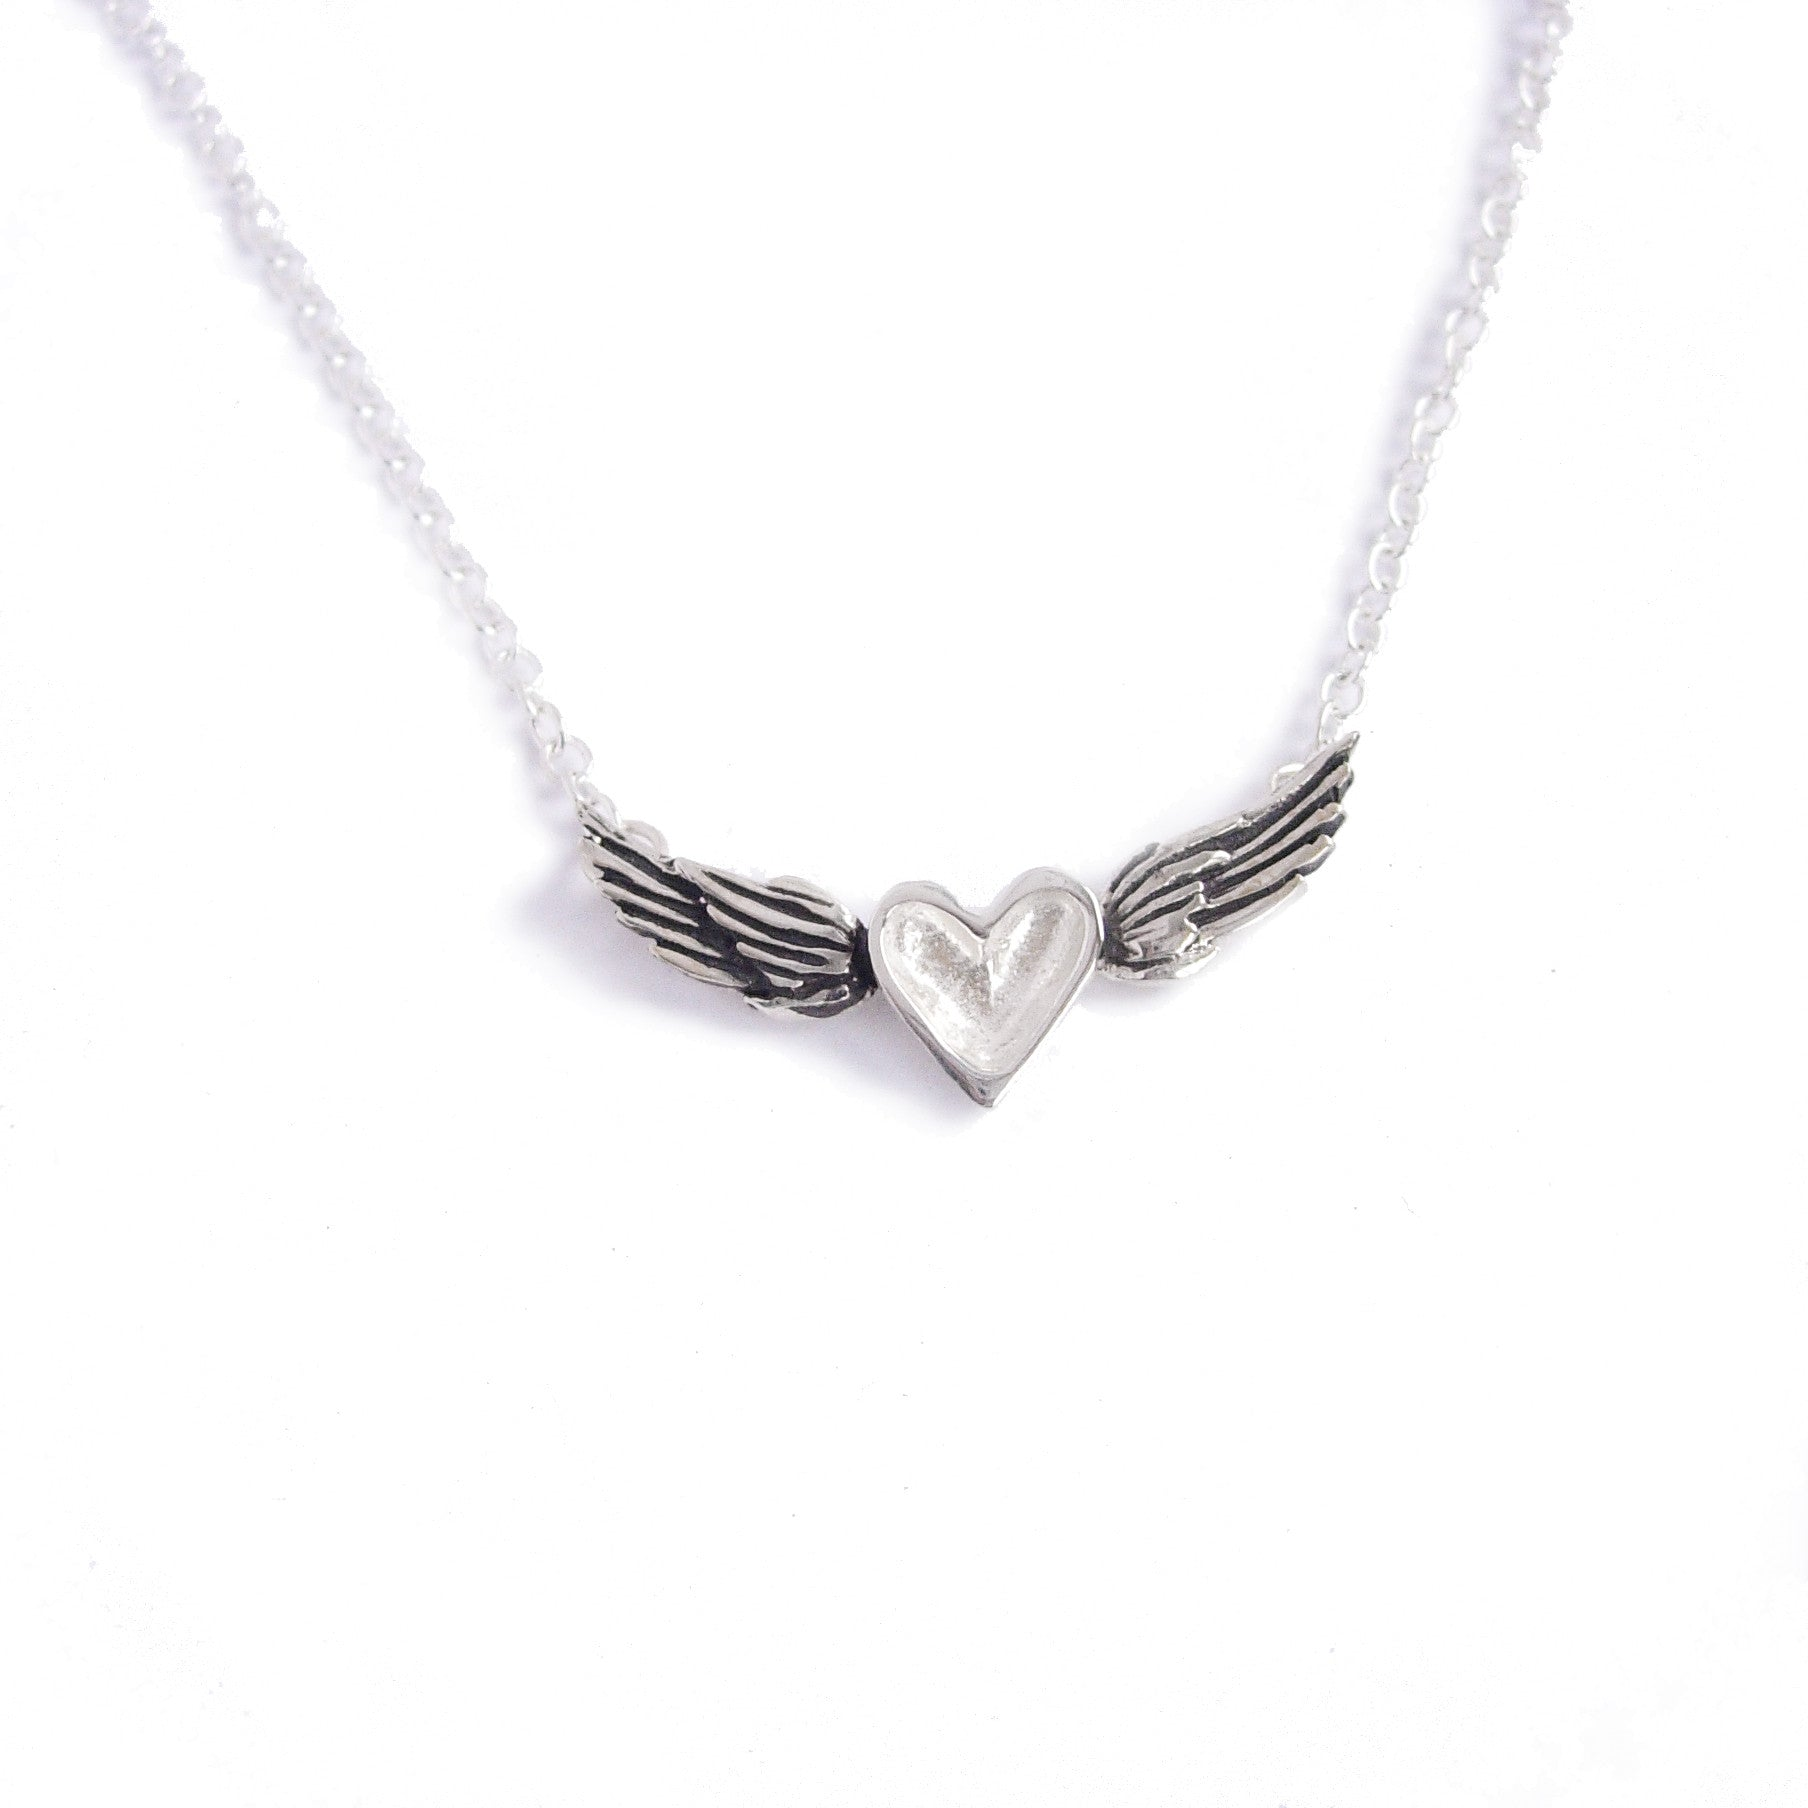 A handmade necklace featuring a sterling silver heart centered between blackened sterling silver wings on a silver chain.